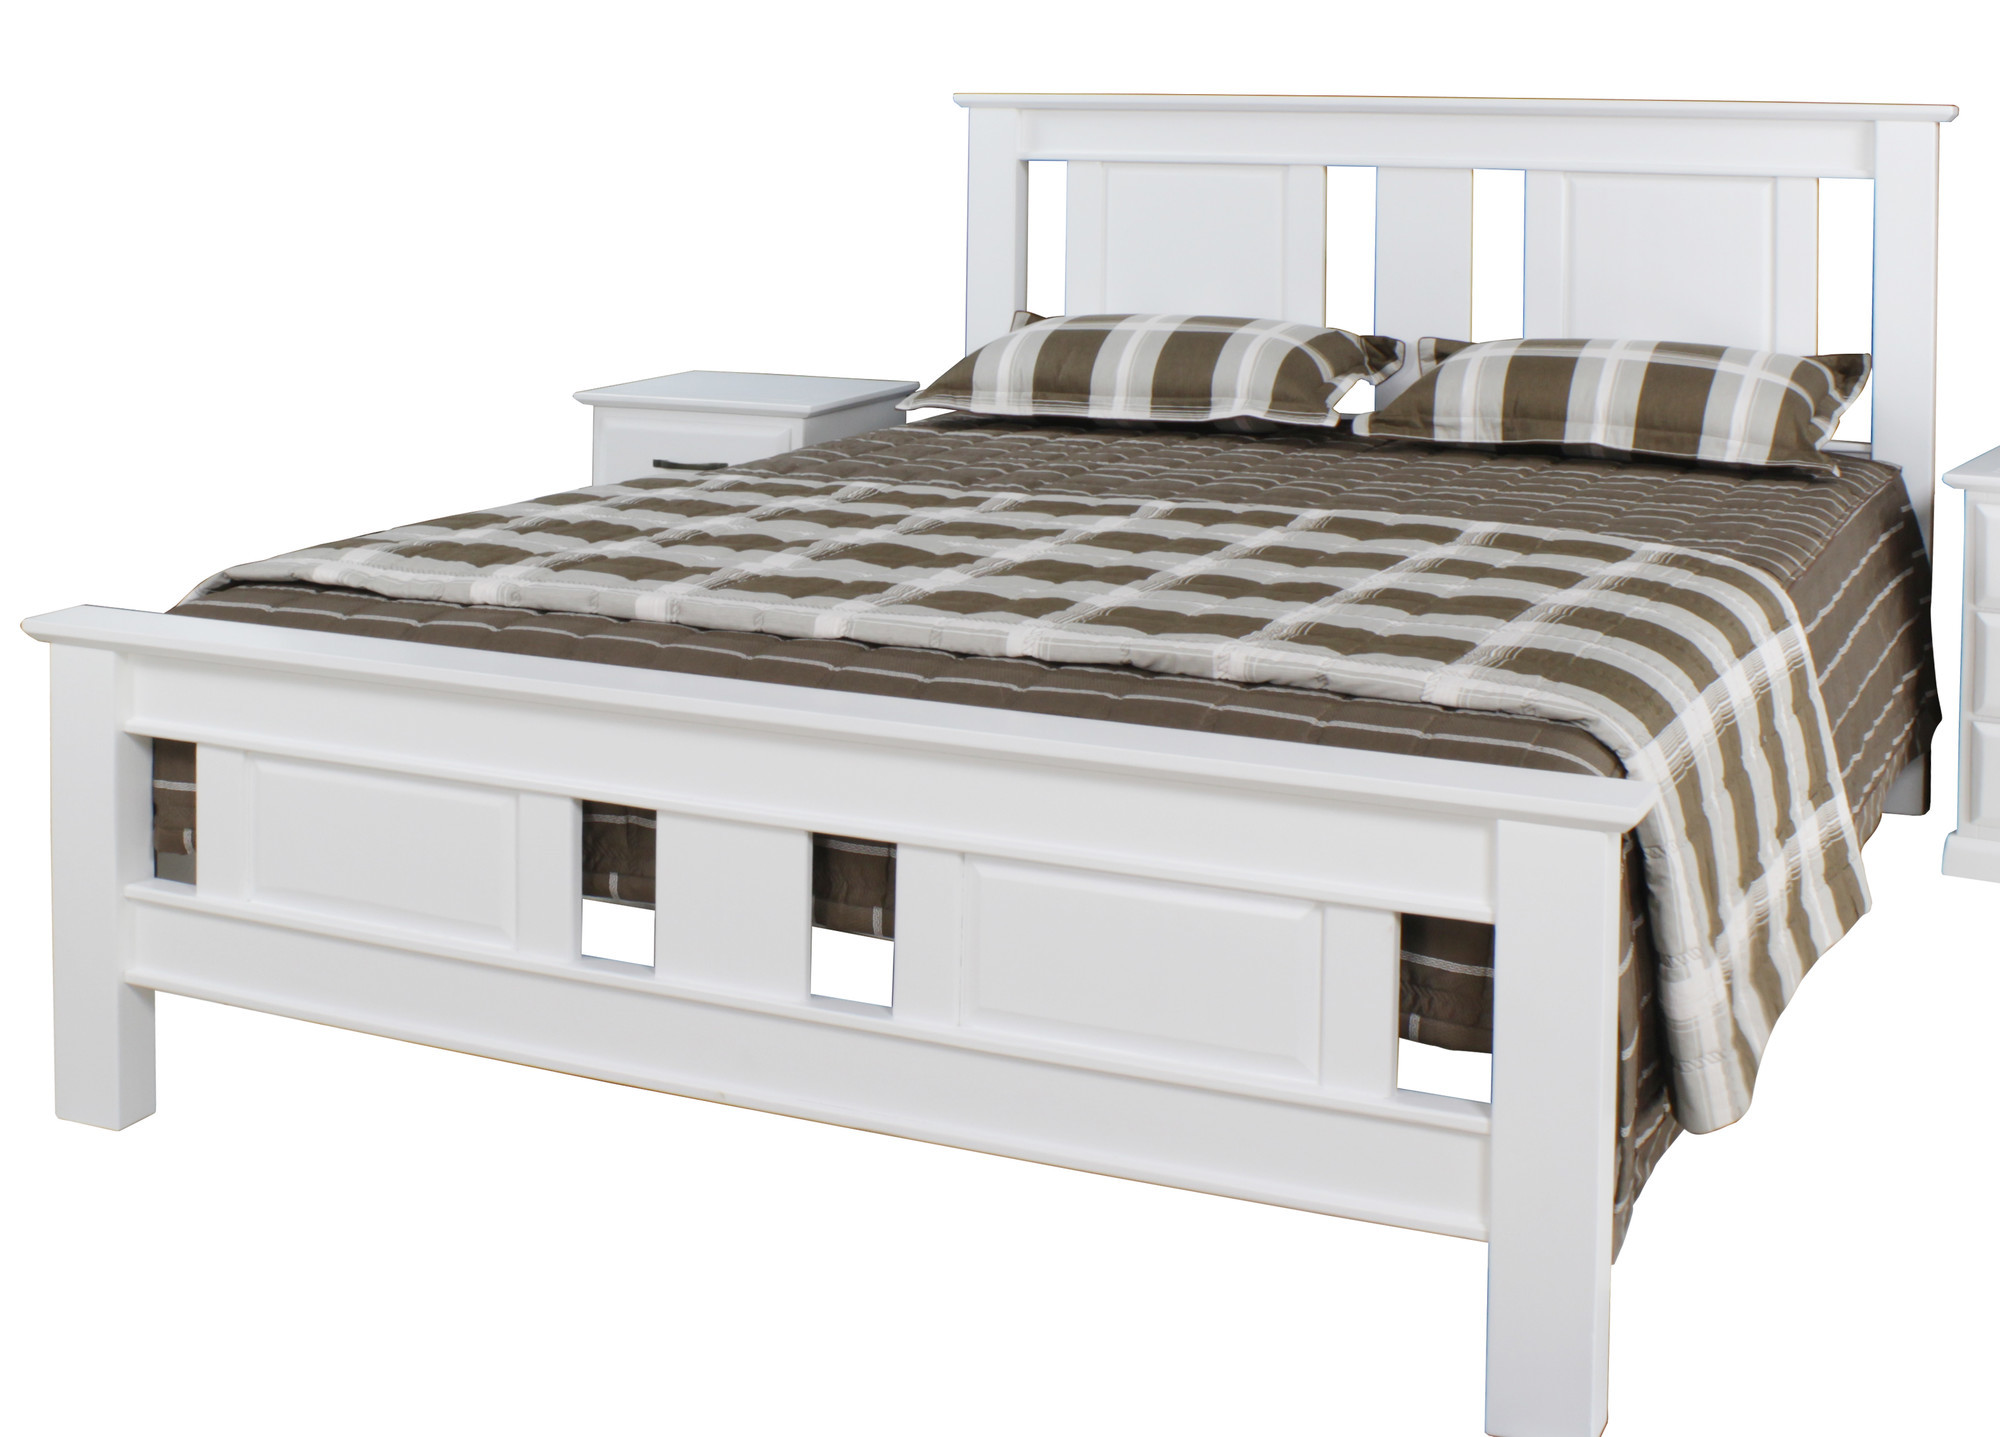 New jindalee bed frame ebay for New bed frame